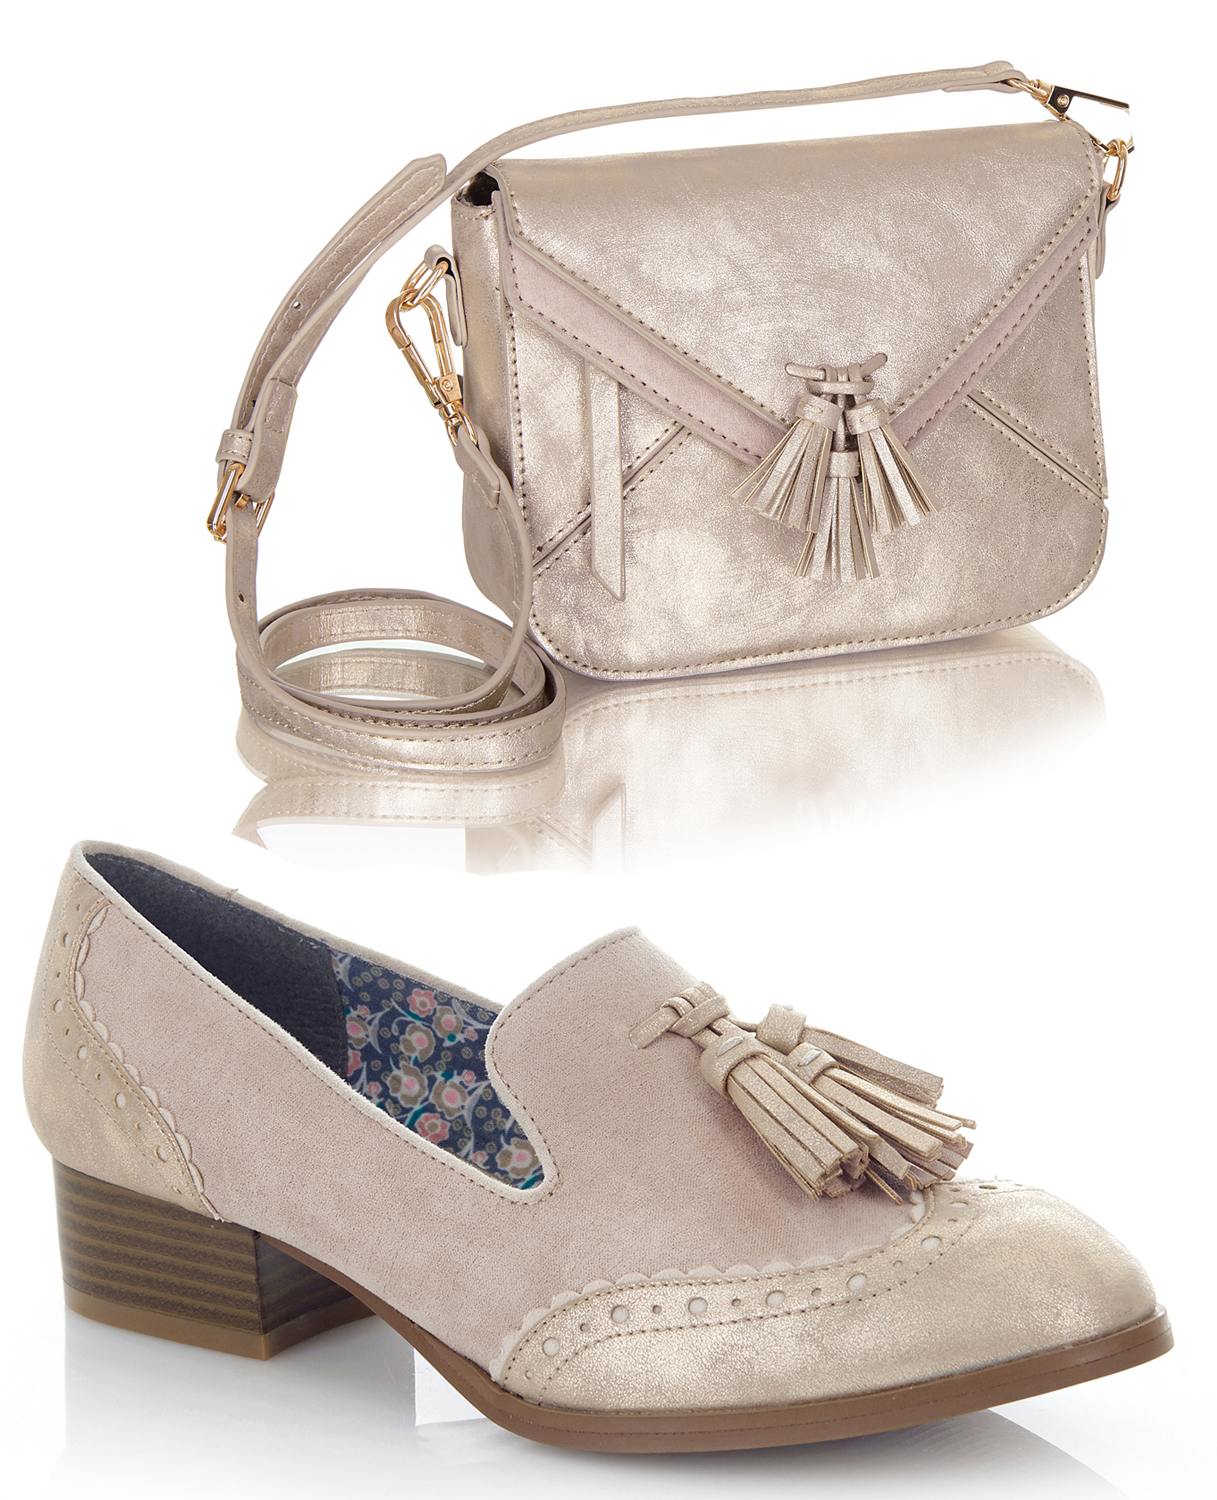 NEW Ruby Shoo Brooke Matching Niedrig Heel Loafers & Matching Brooke Cancun Bag UK3-9 EU36-42 85fcf5